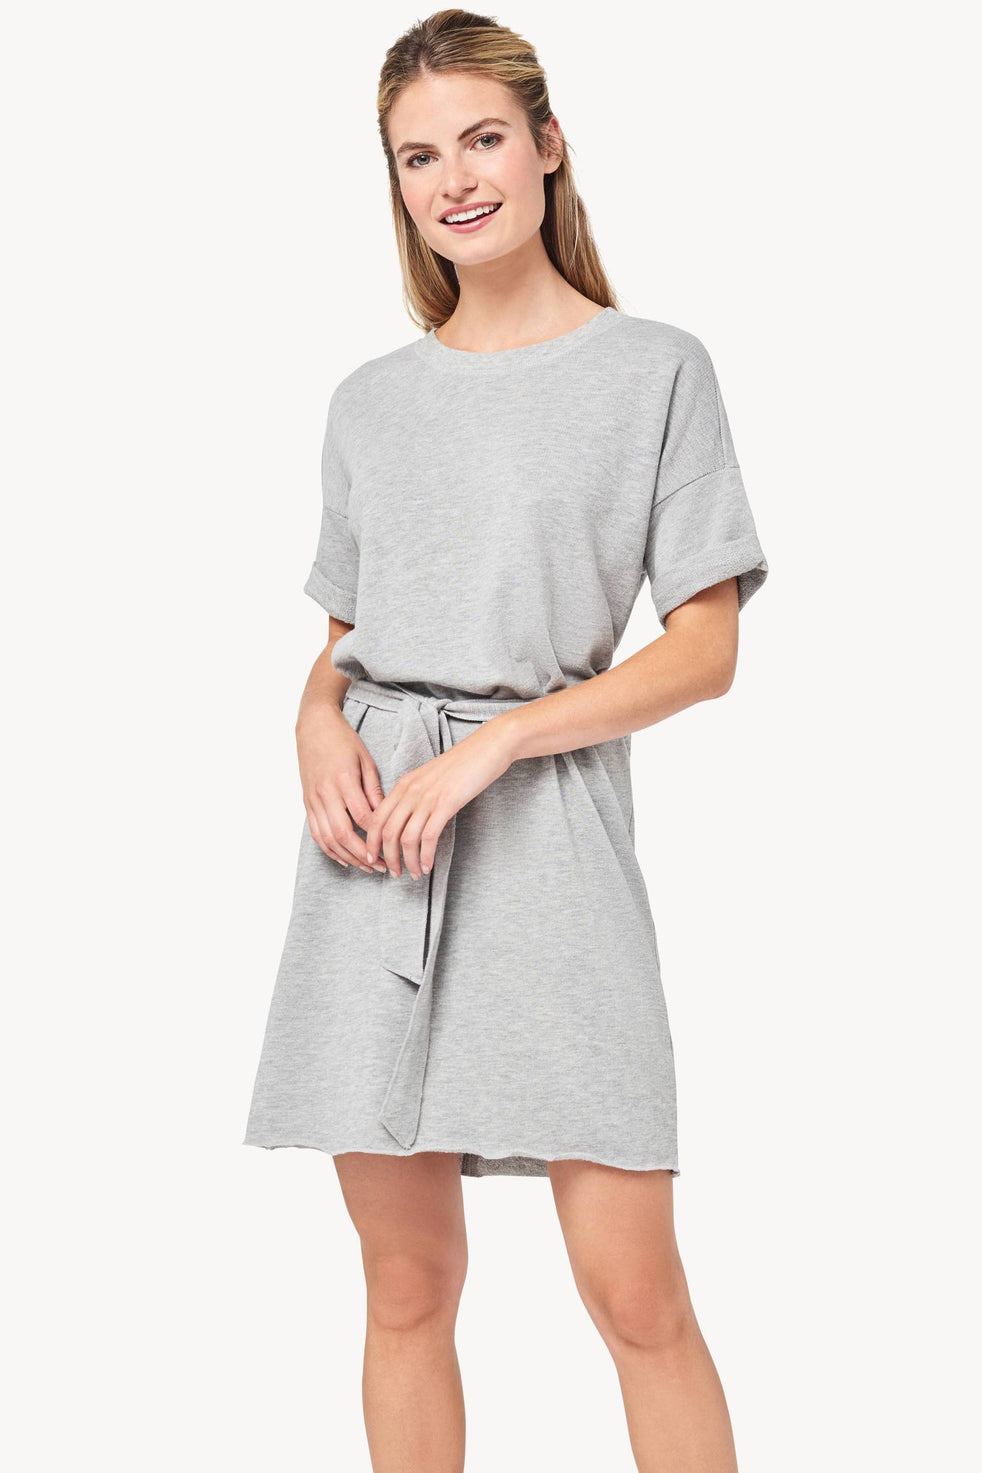 6658ca7c9d2 Short Sleeve Dress Womens Dress Heather Grey A1 ...